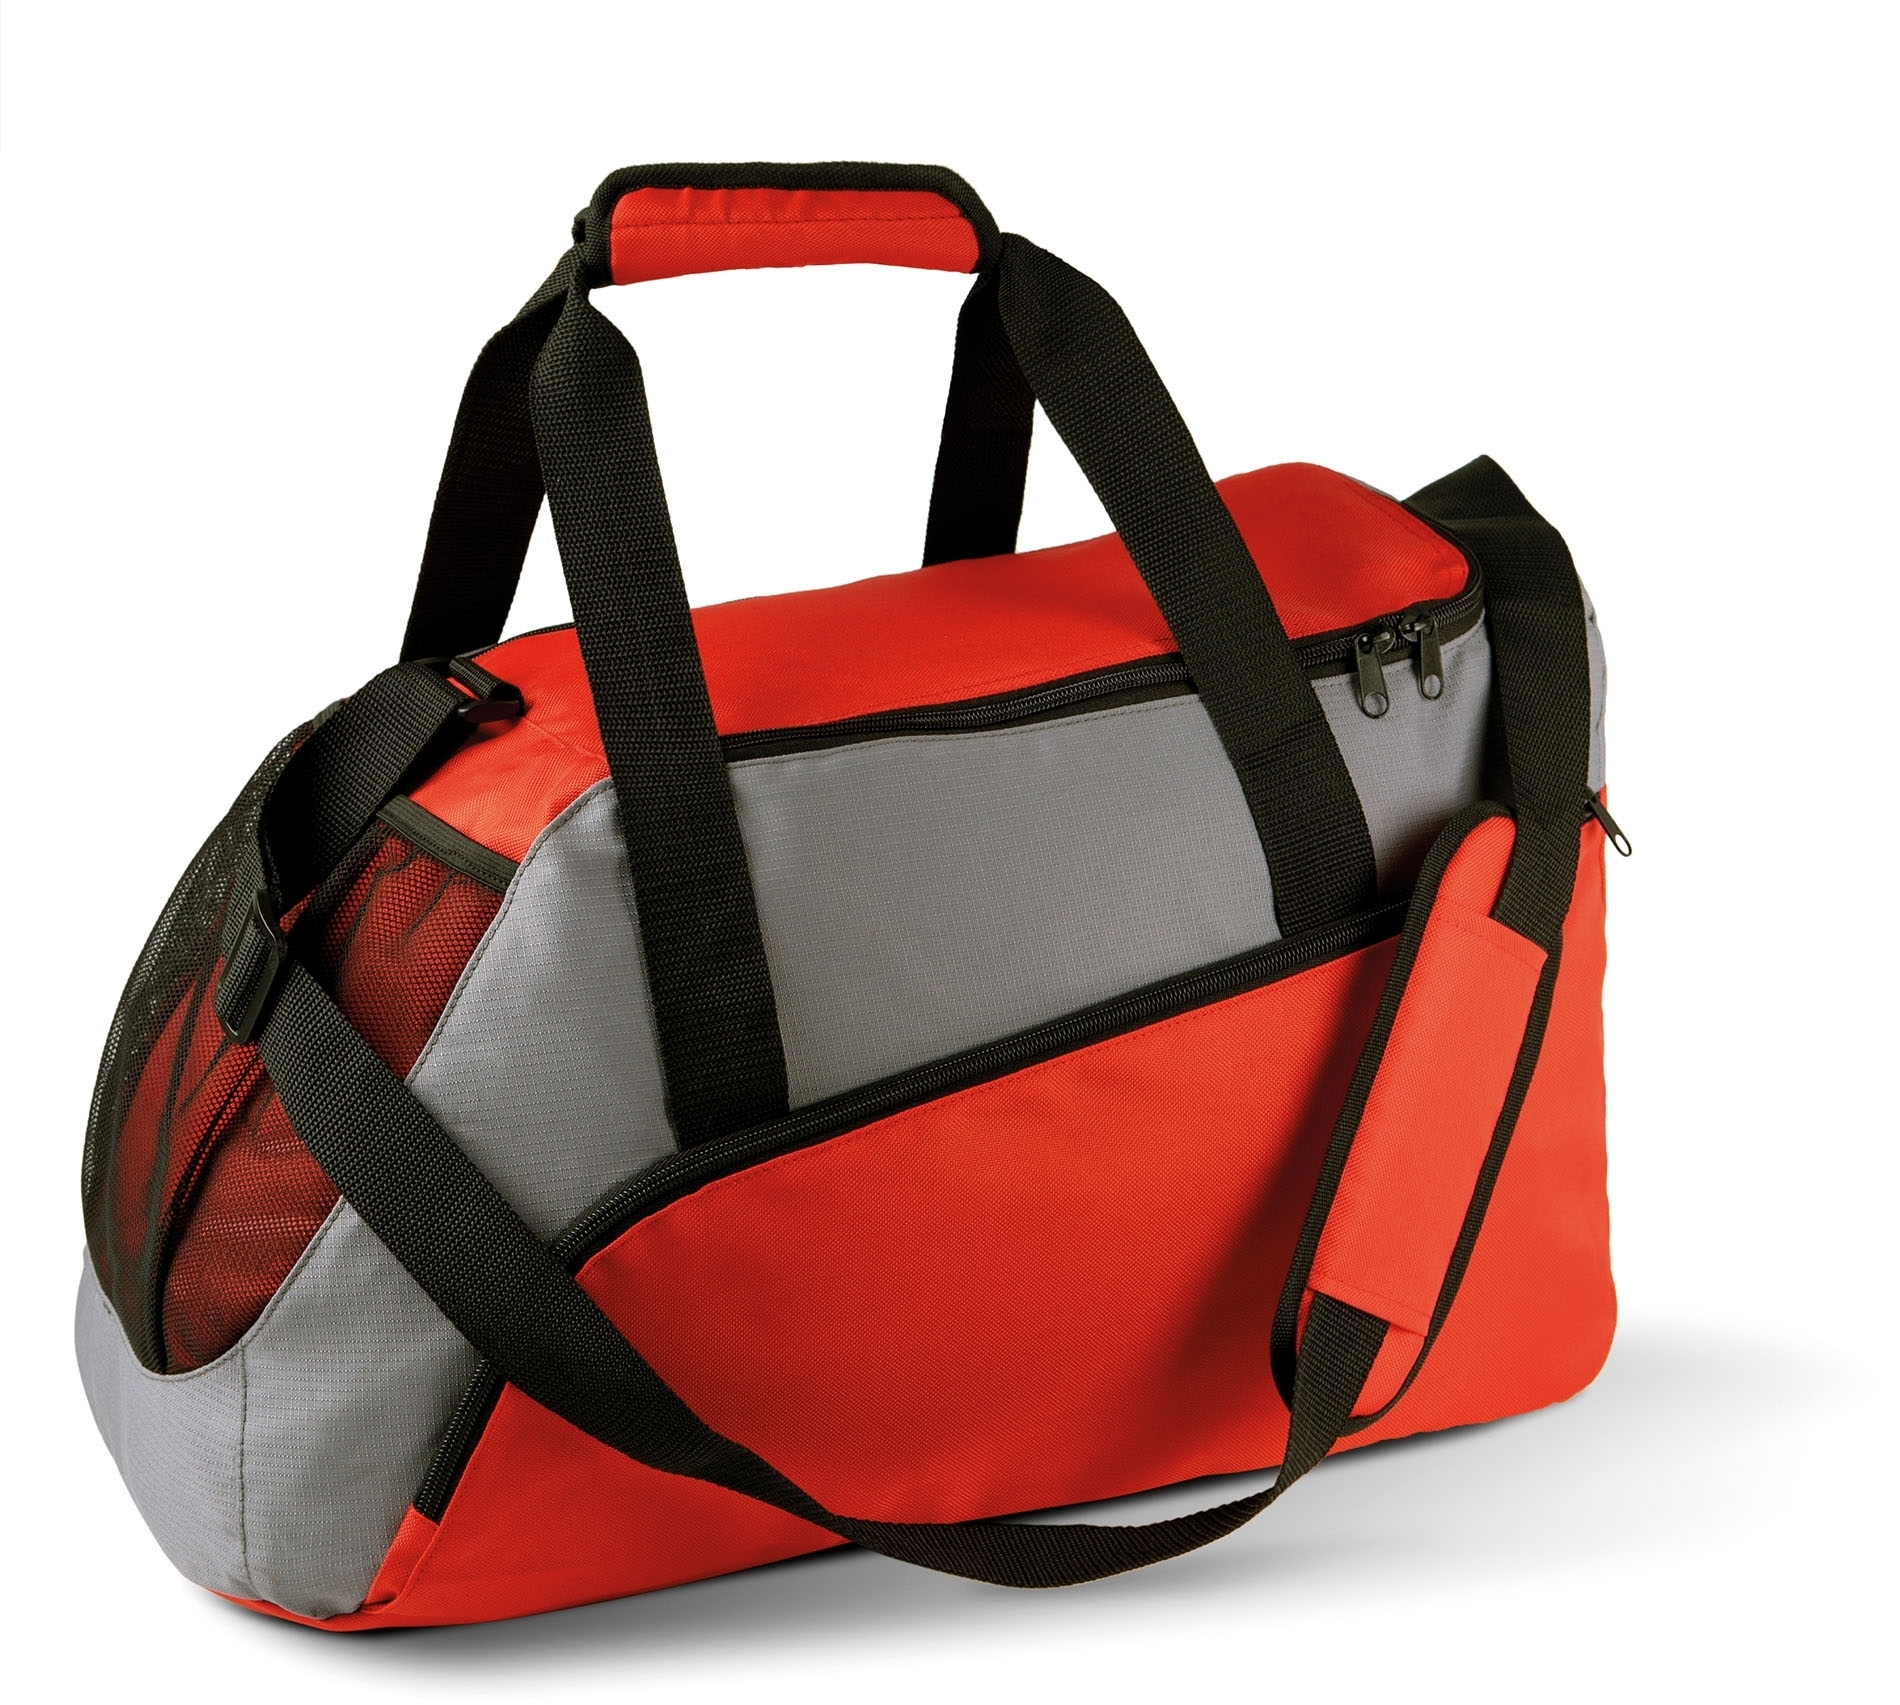 SAC DE SPORT Red / Slate Grey Rouge